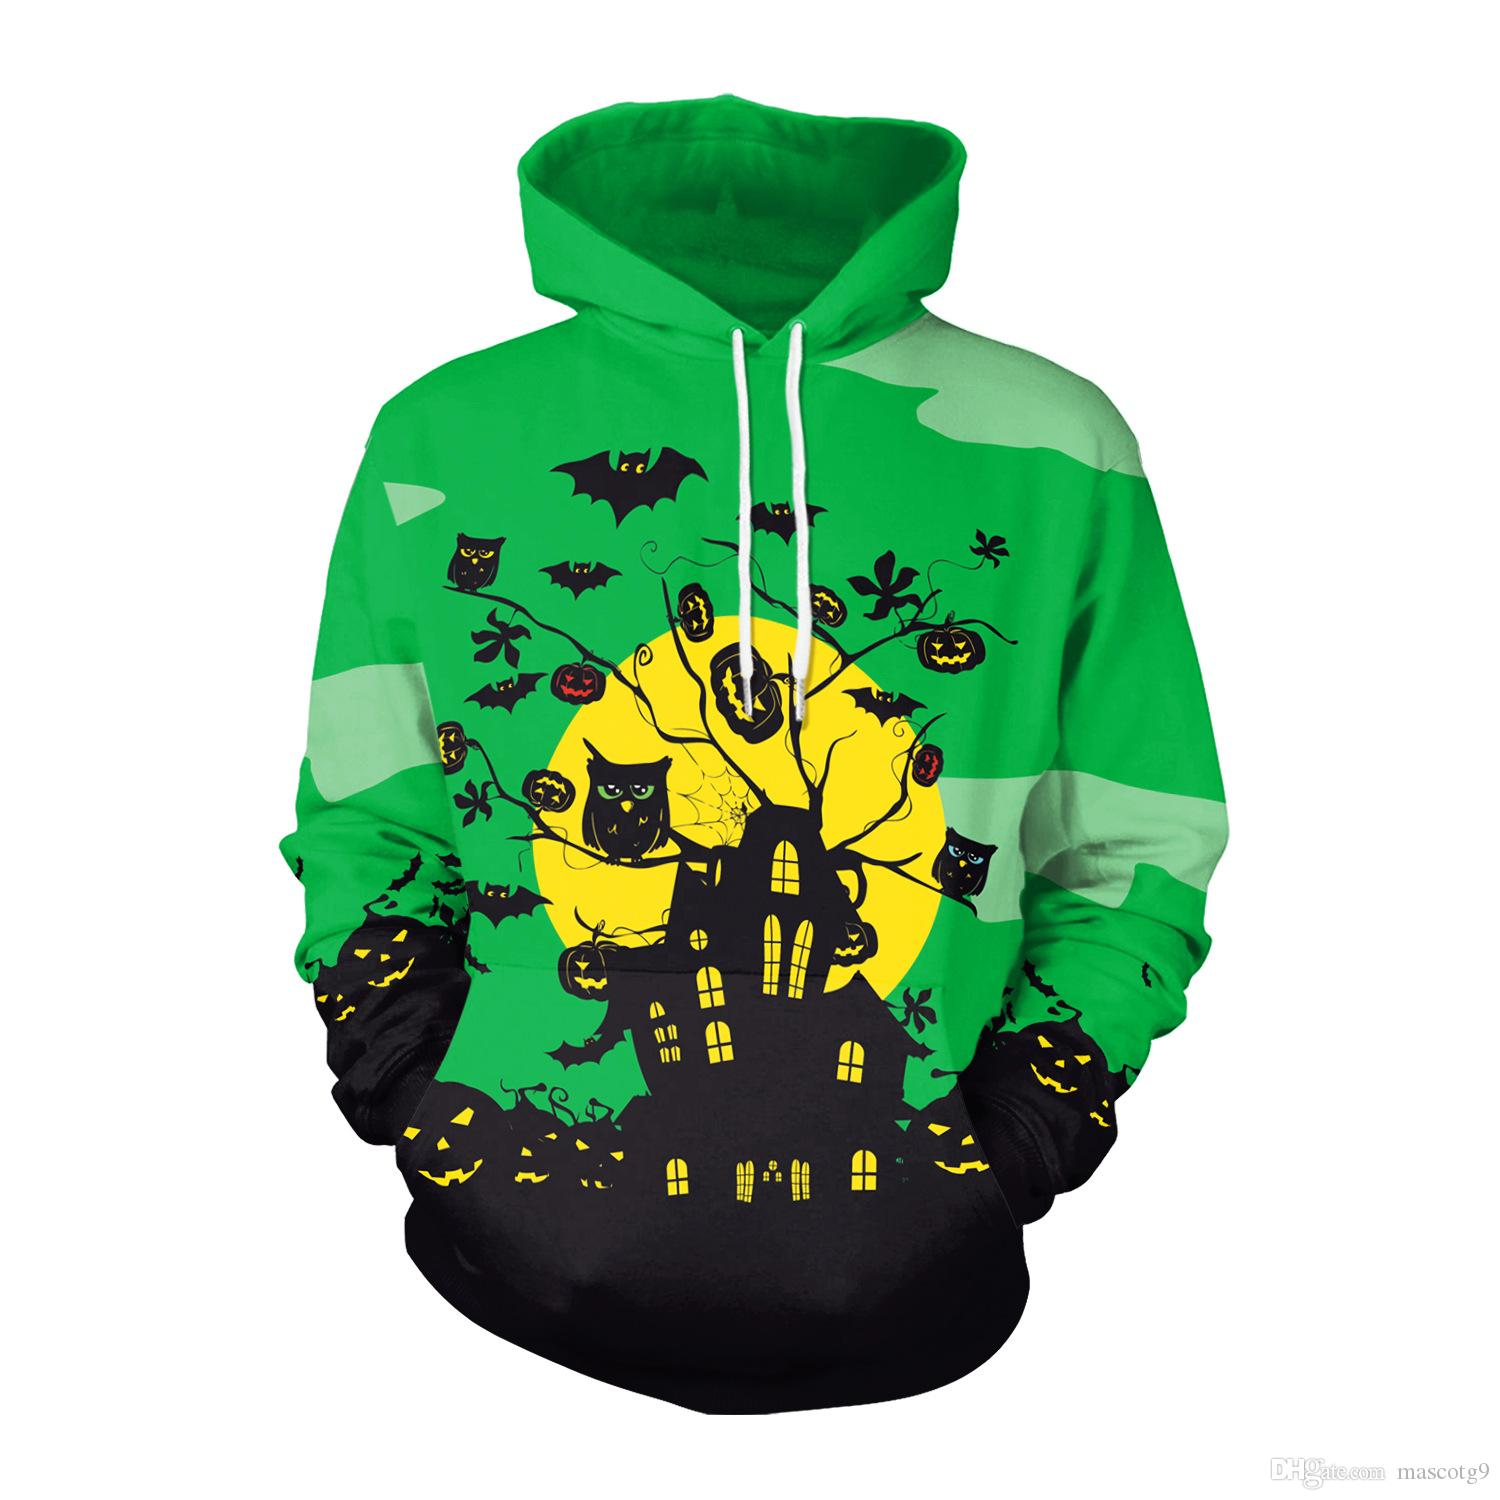 Winter Halloween Party cosplay costumes Over size Hoodies Haunt The House Bat Horror Digital Printed Sweatshirt